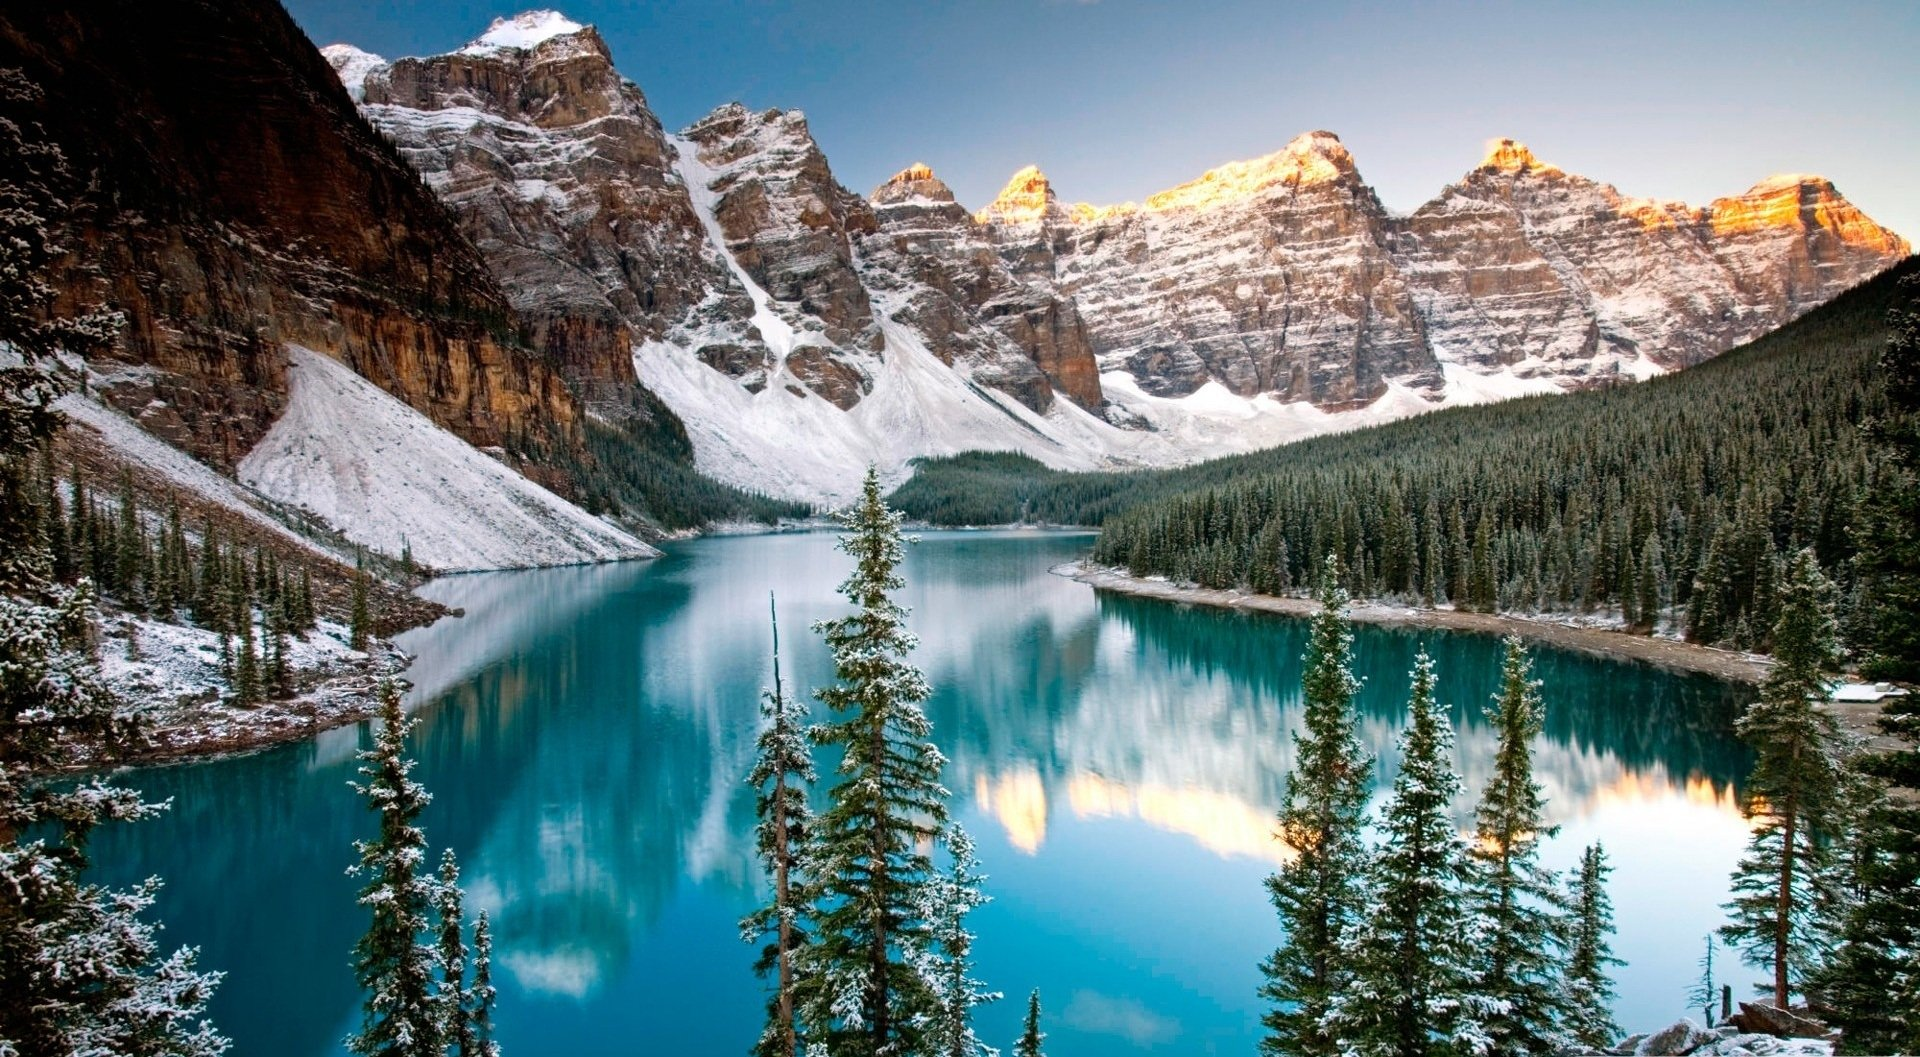 Banff National Park Wallpaper Banff National Park HD 1920x1057